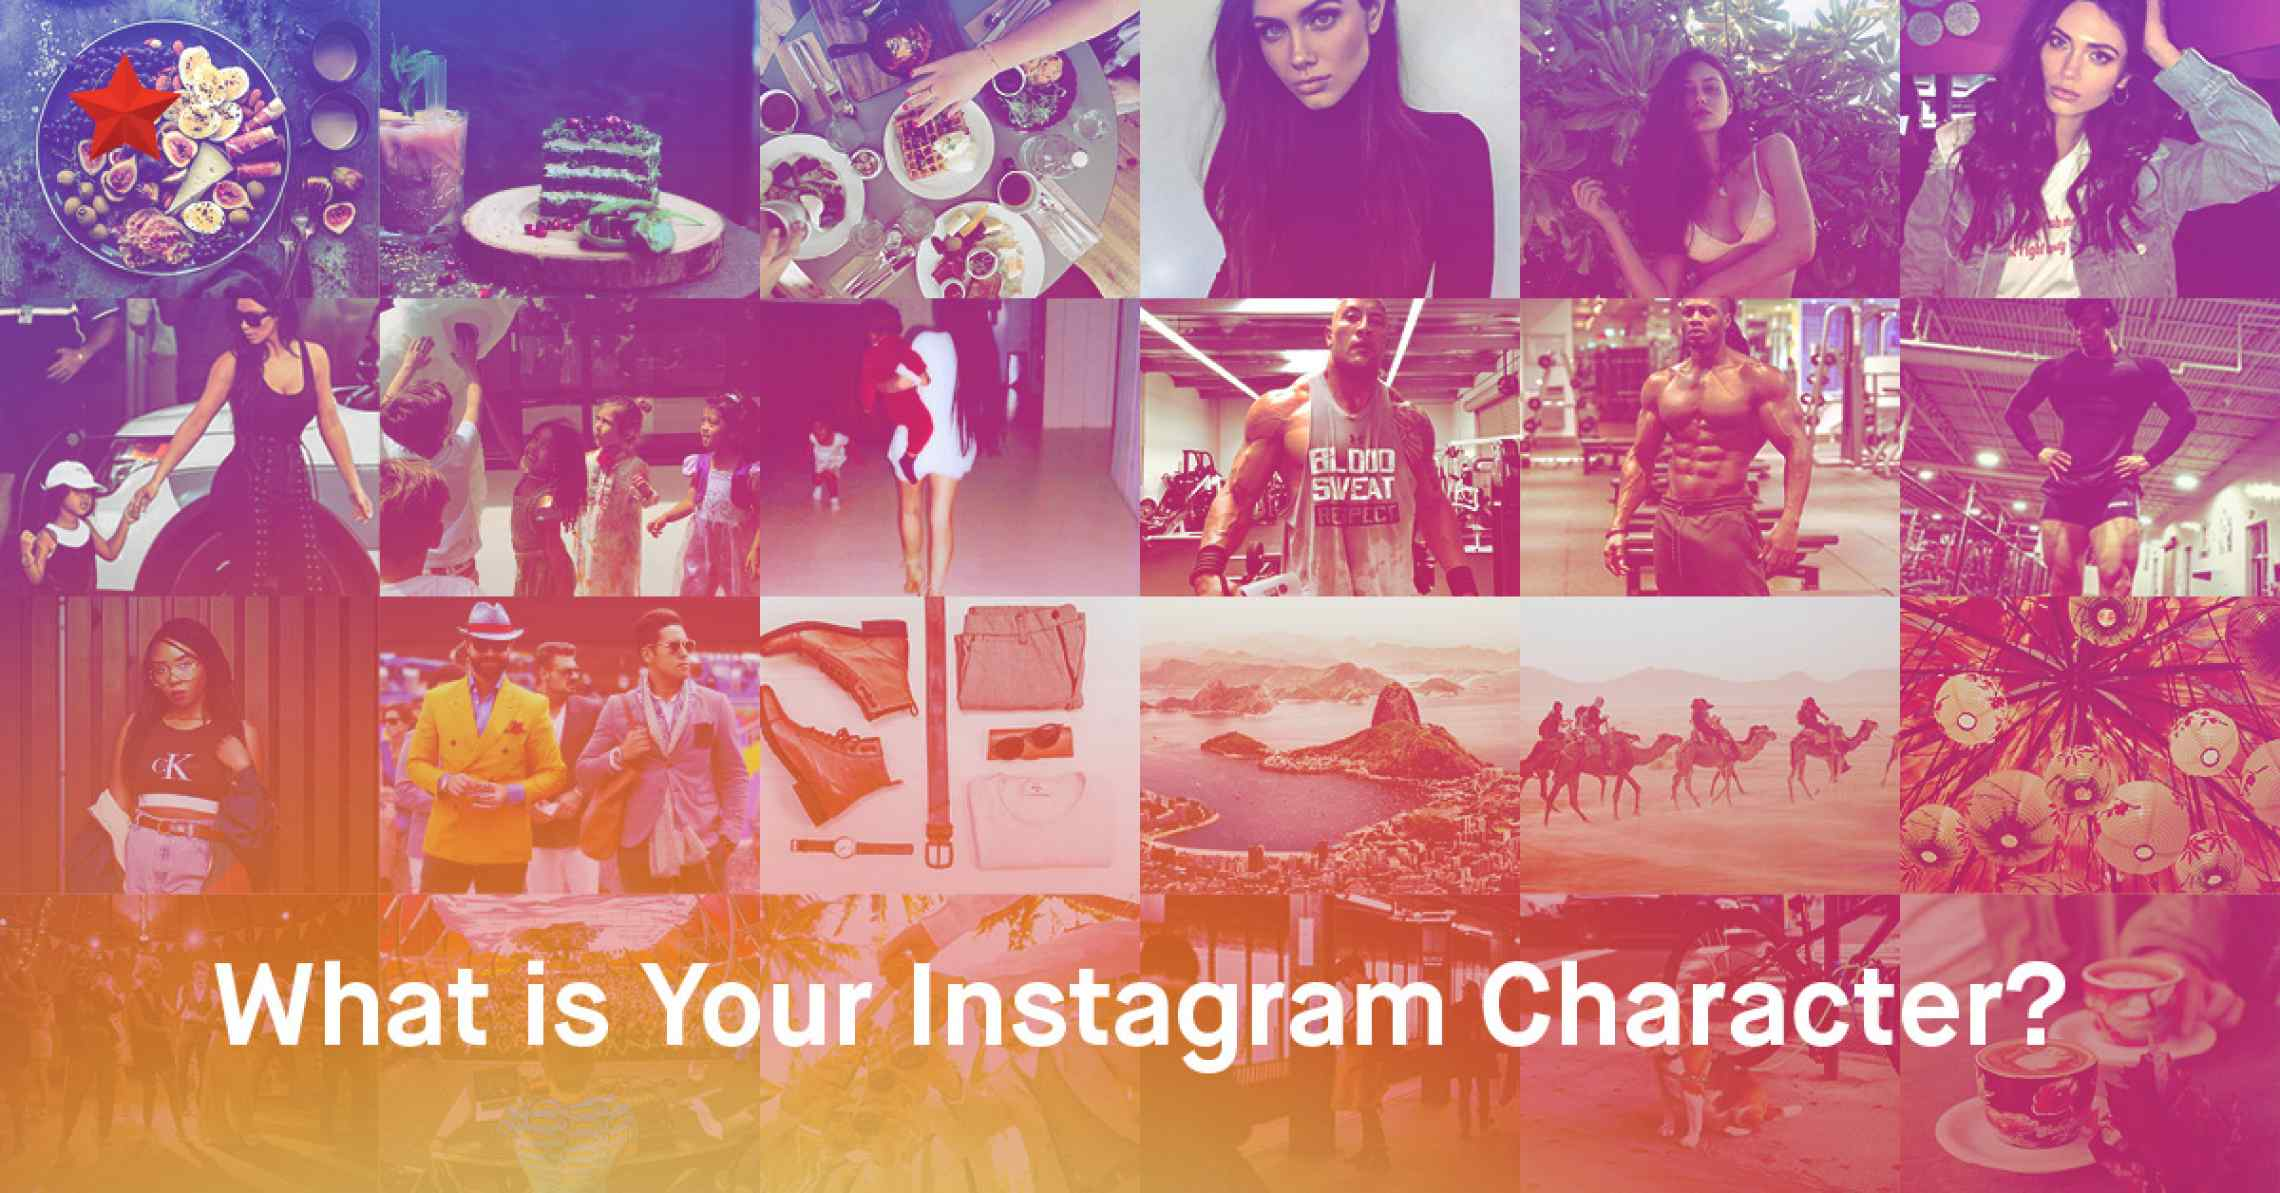 What Type of Instagram Character are You?